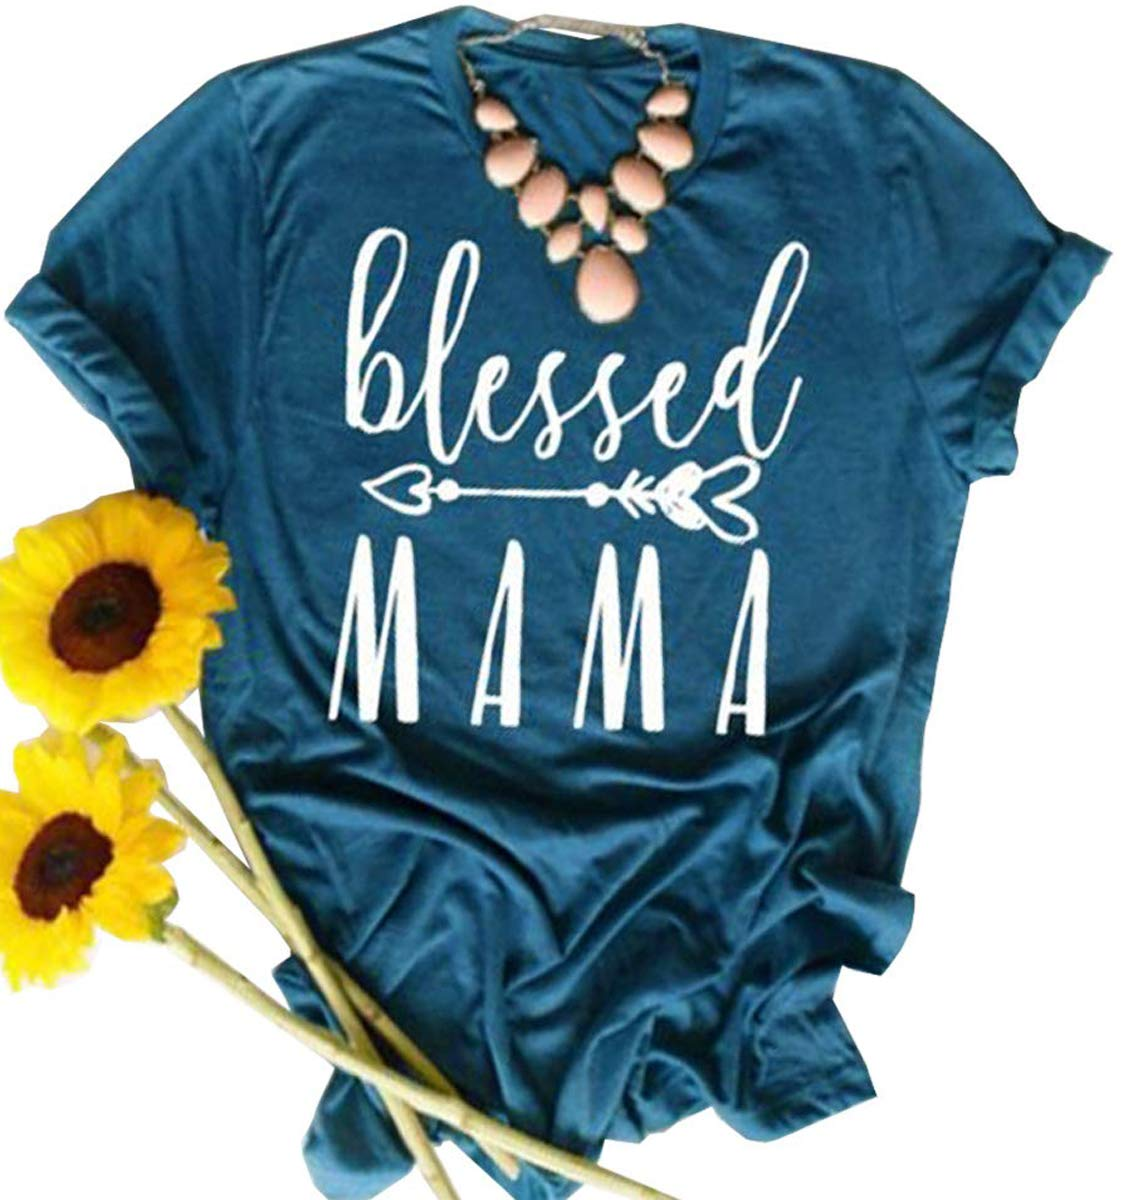 10387ea2 Blessed Mama Heart Arrow T-Shirt Women Thanksgiving Mother's Day Tee Size  XL (Blue)